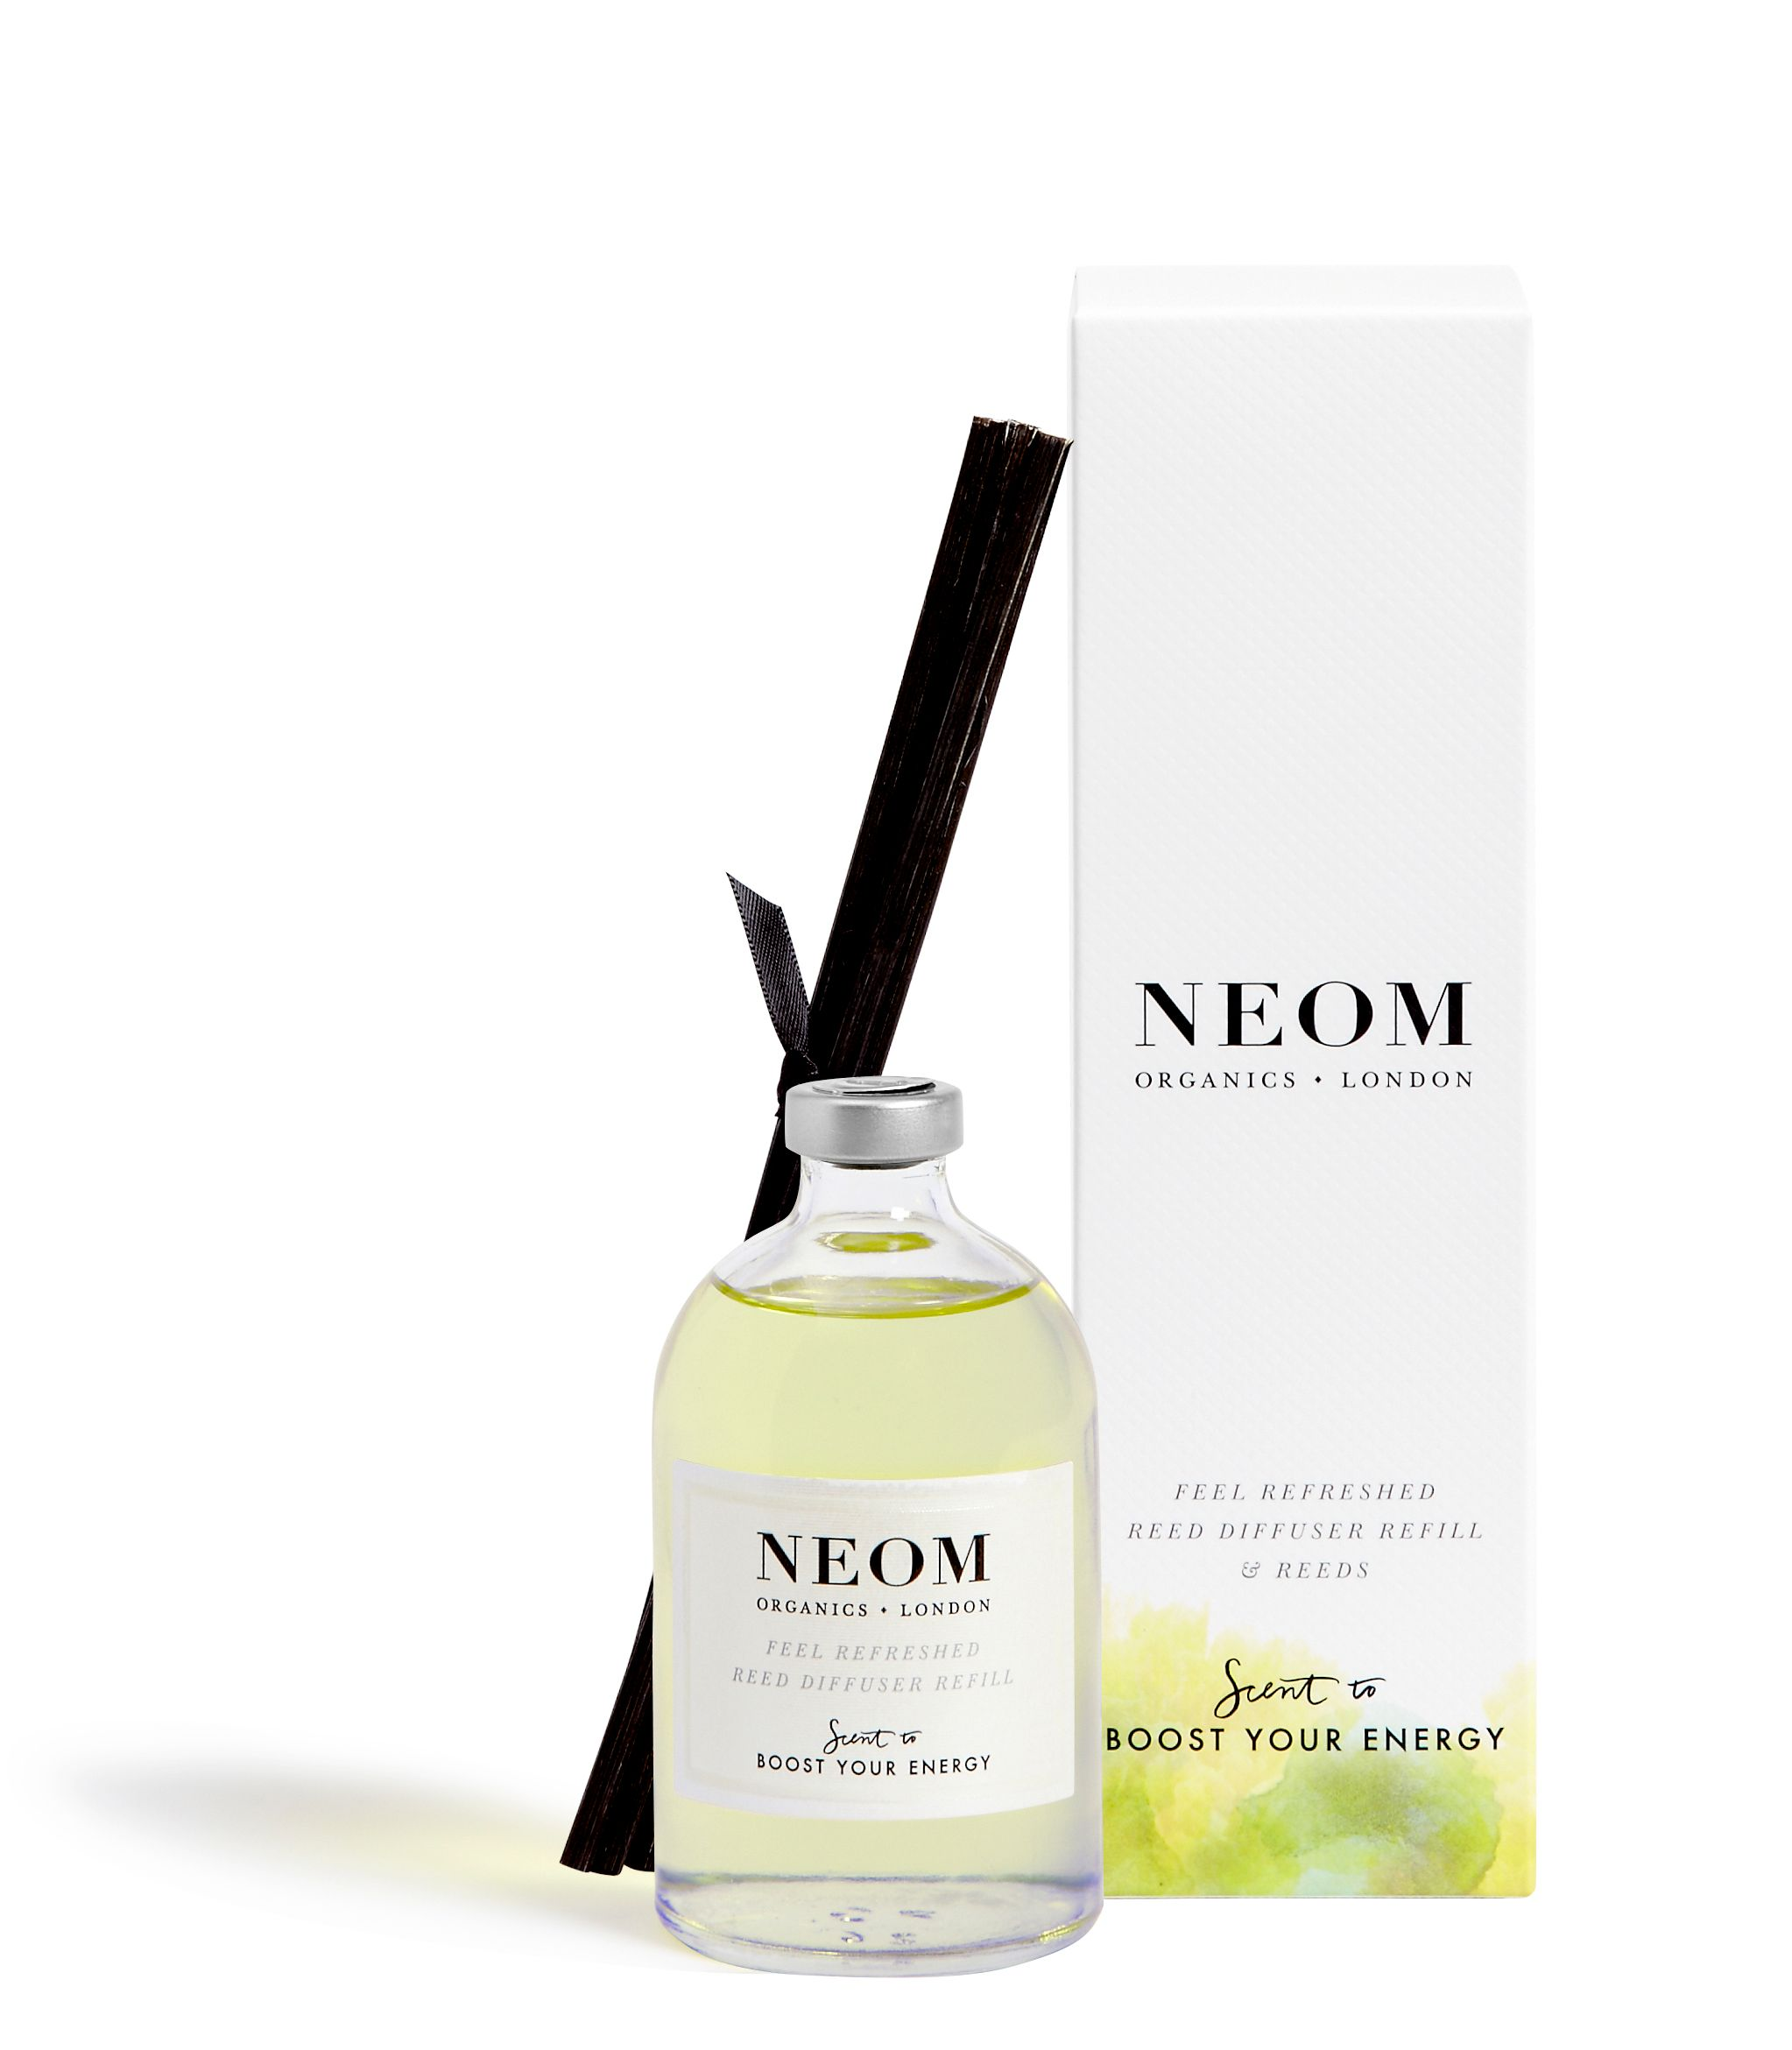 Image of Neom Feel Refreshed Reed Diffuser Refill 100ml